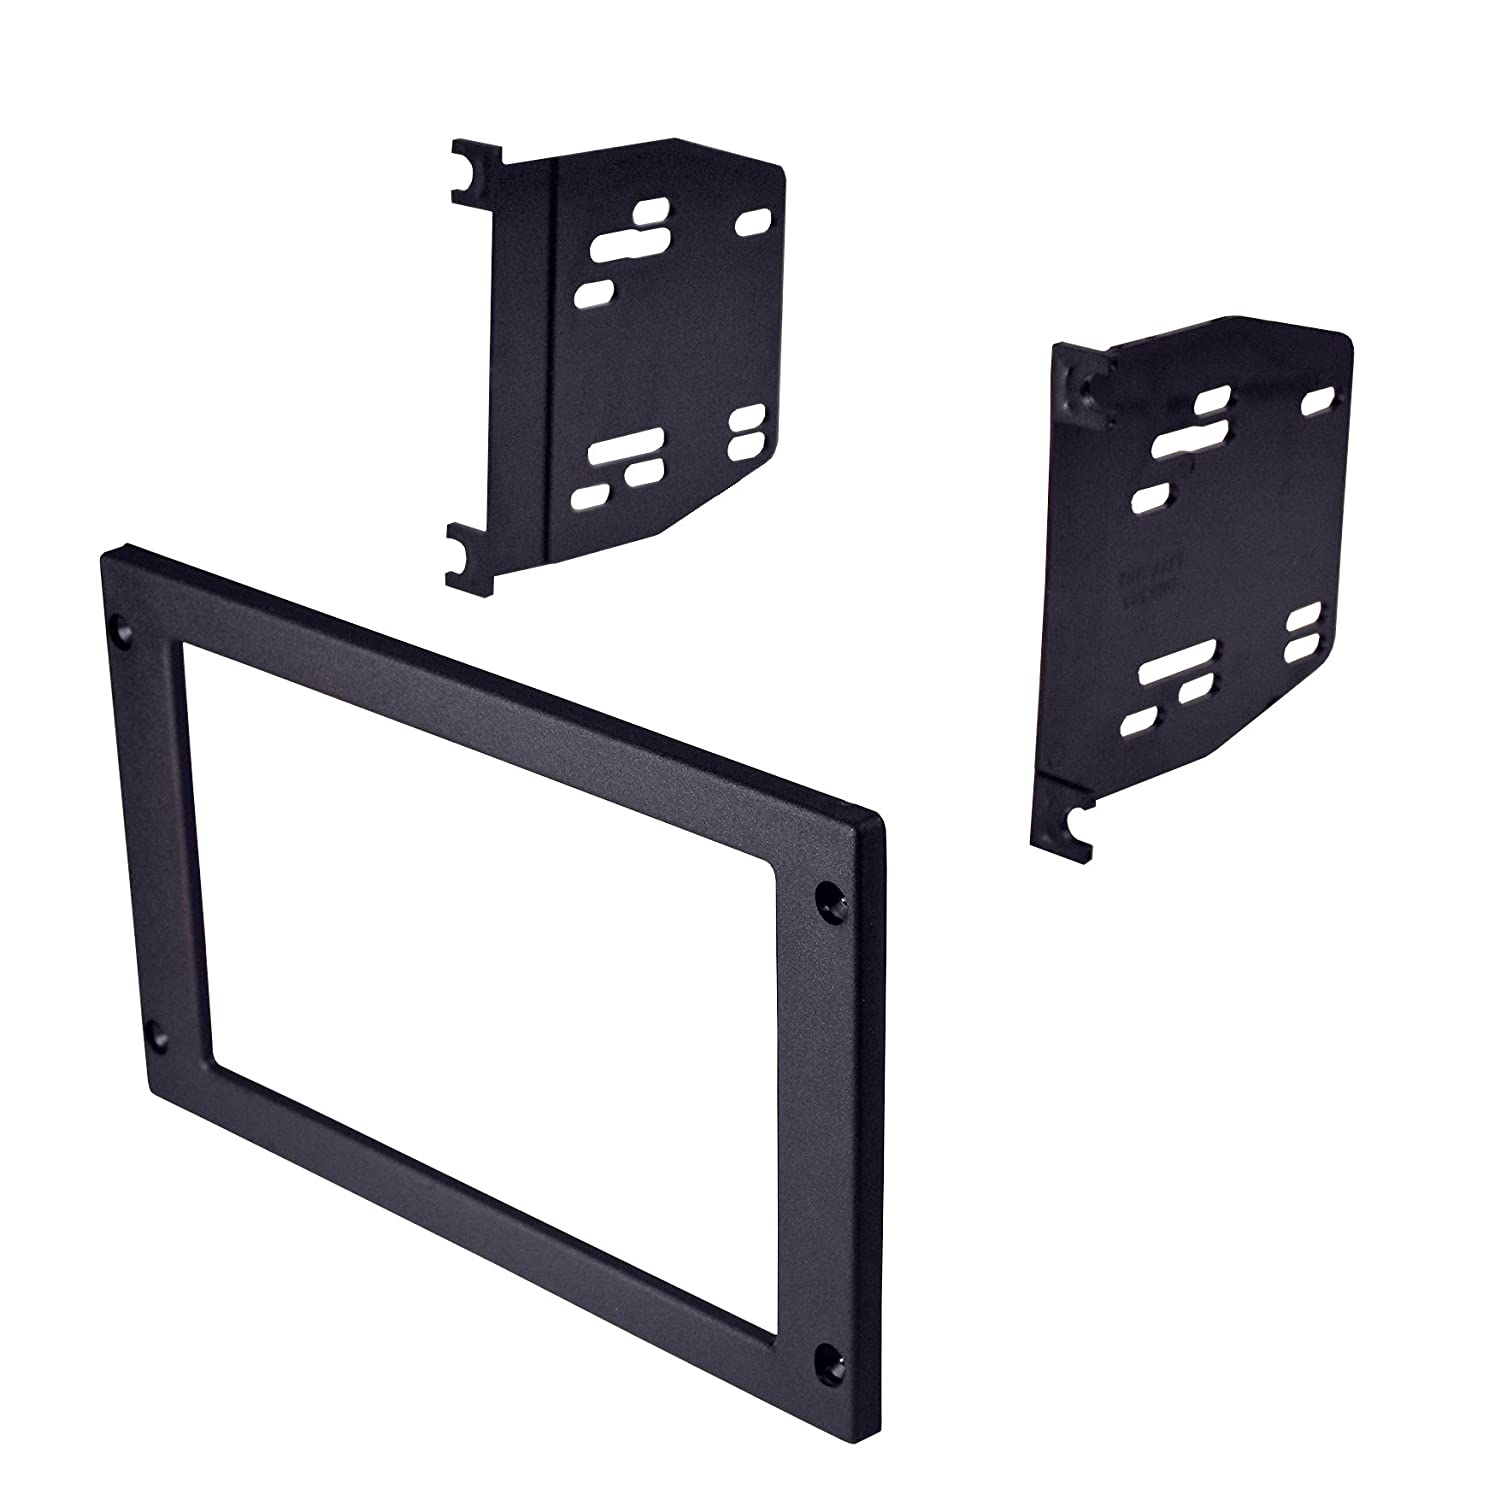 Ai FMK505 1987-1993 Ford Mustang Double DIN Dash Kit American International